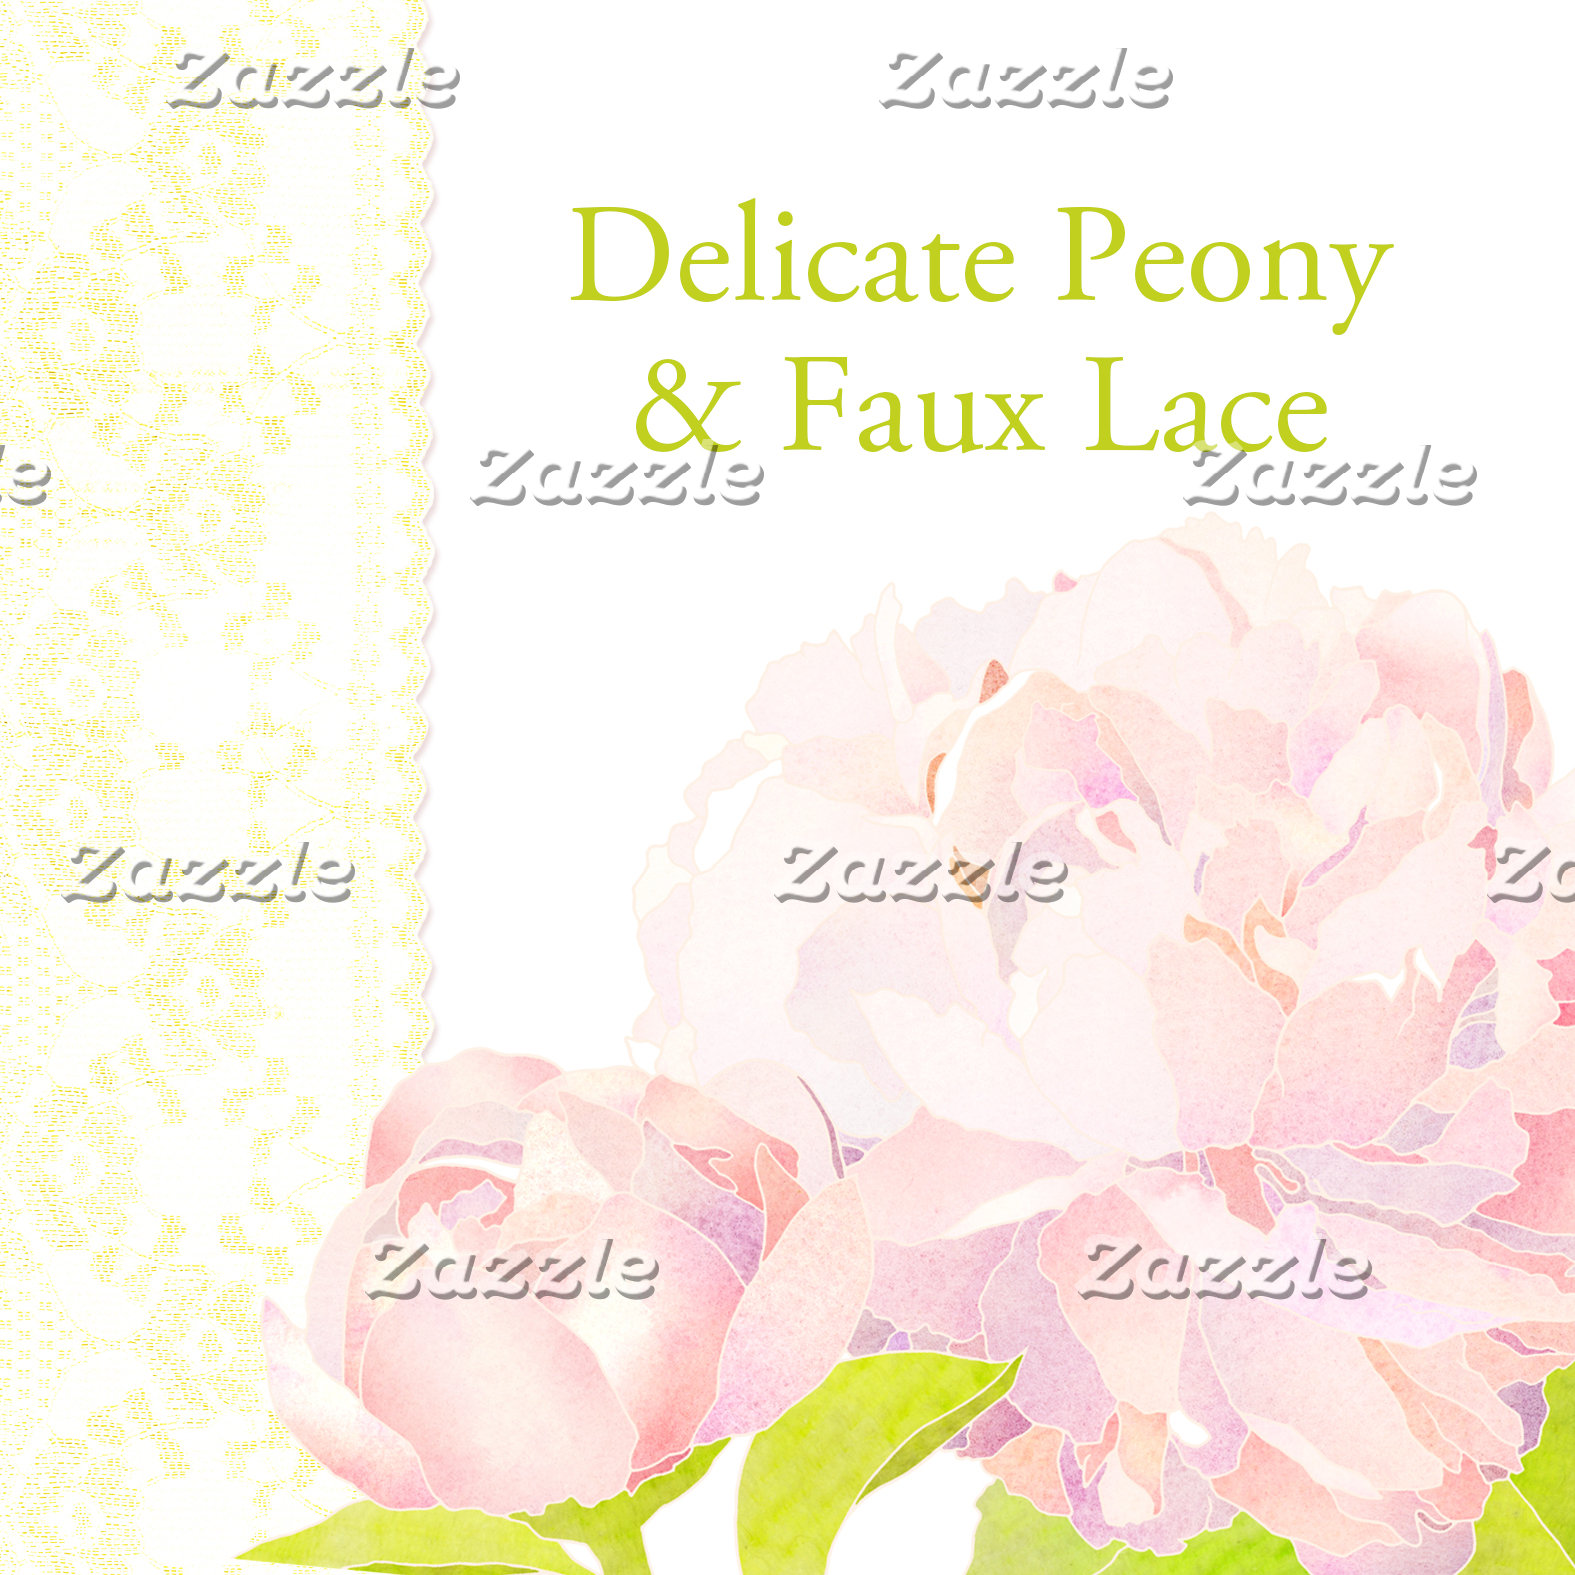 ♥ Delicate Peony & Faux Lace